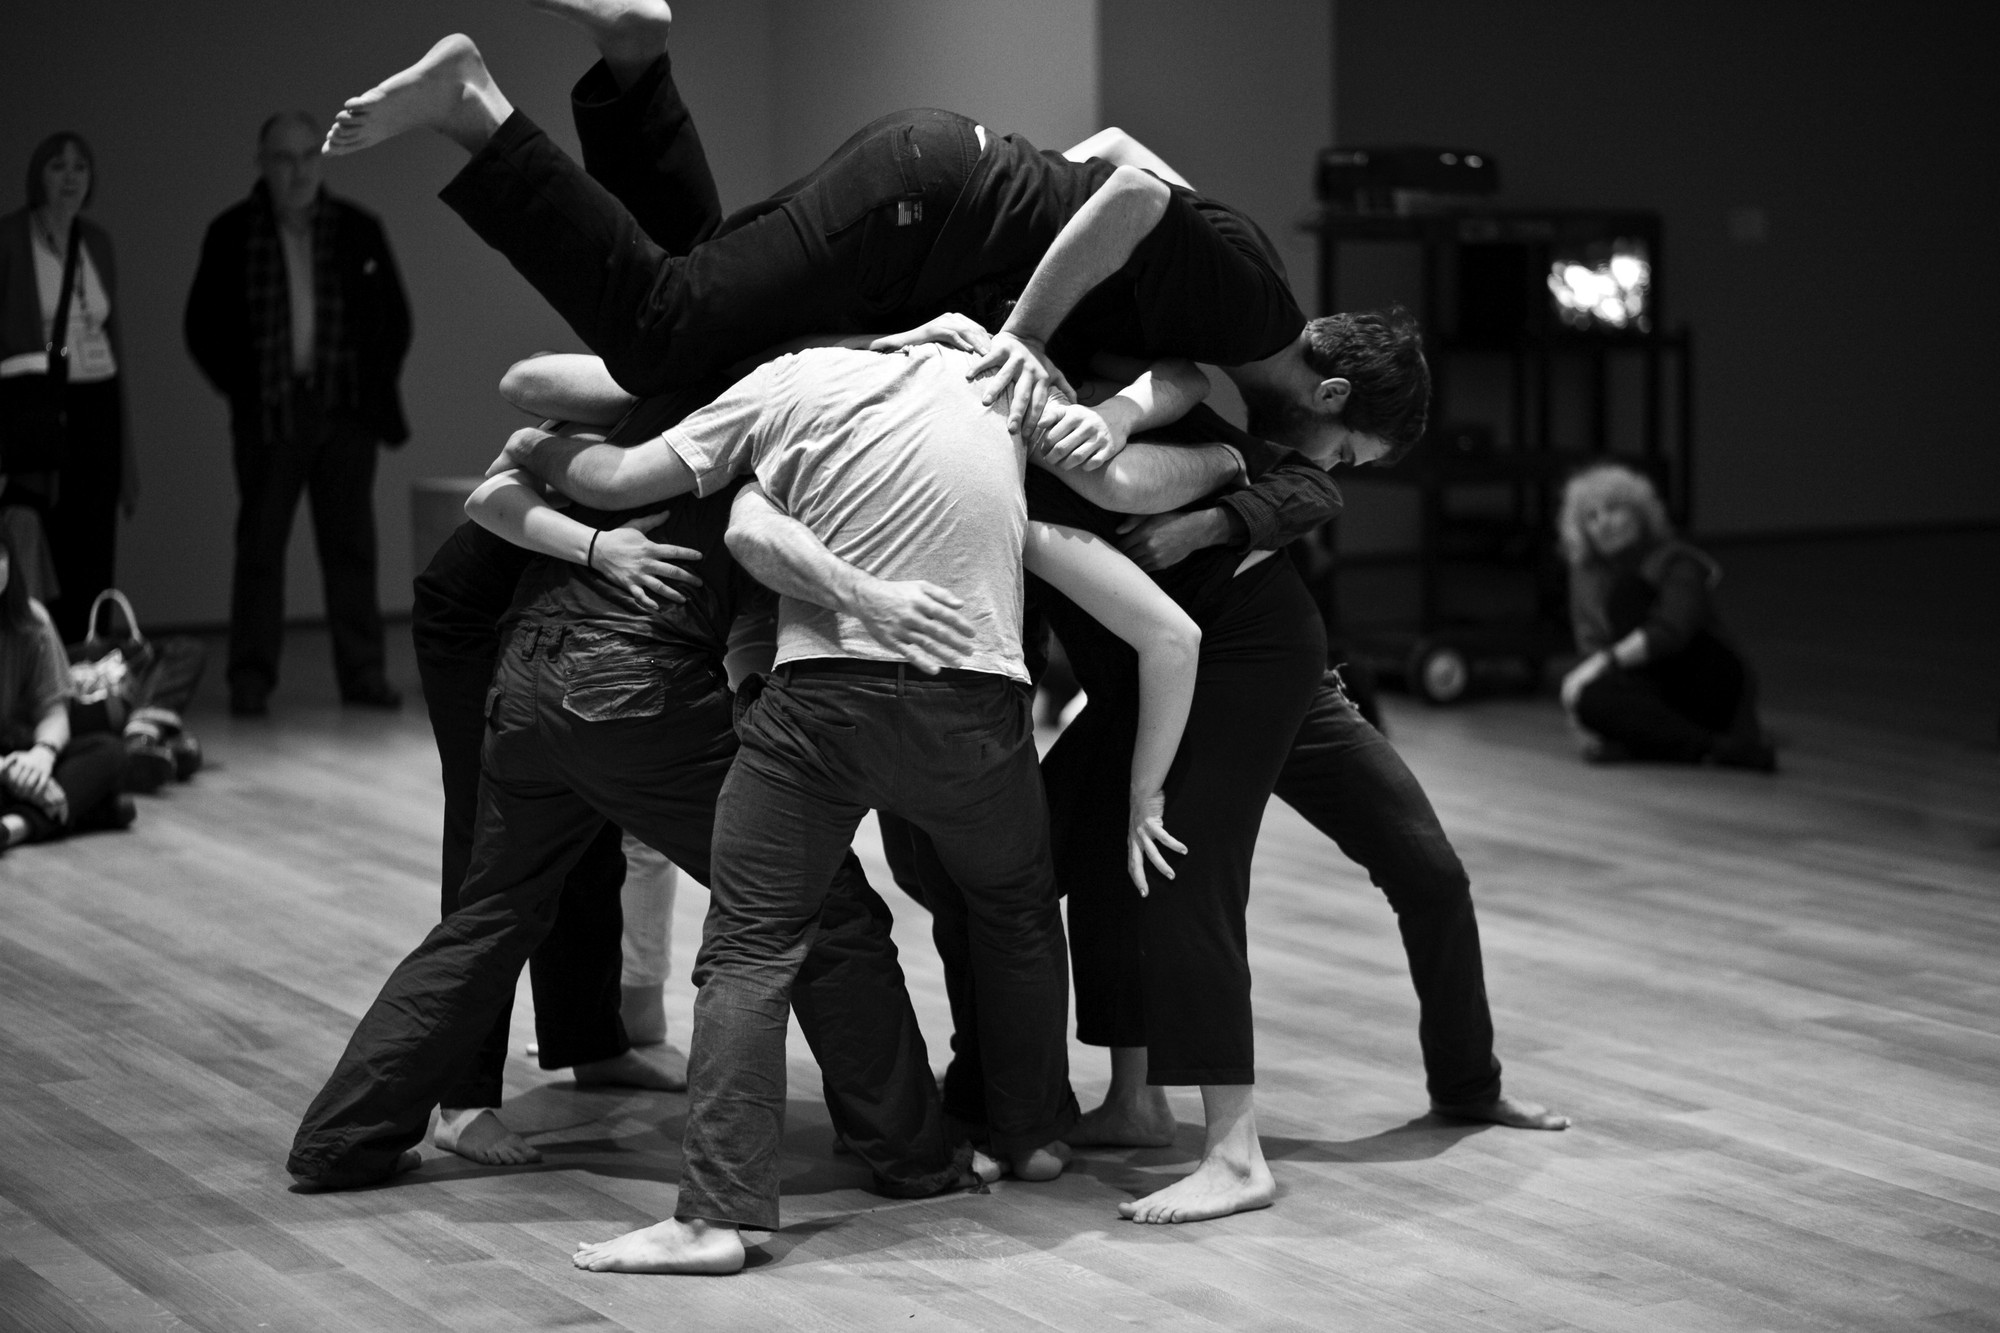 Simone Forti. Huddle, 1961. Performance. 10 min. Committee on Media and Performance Art Funds. © 2018 The Museum of Modern Art, New York. Performed in Performance 2: Simone Forti, The Museum of Modern Art, New York, March 7 - 8, 2009. Digital image: © 2018 Yi-Chun Wu/The Museum of Modern Art, New York